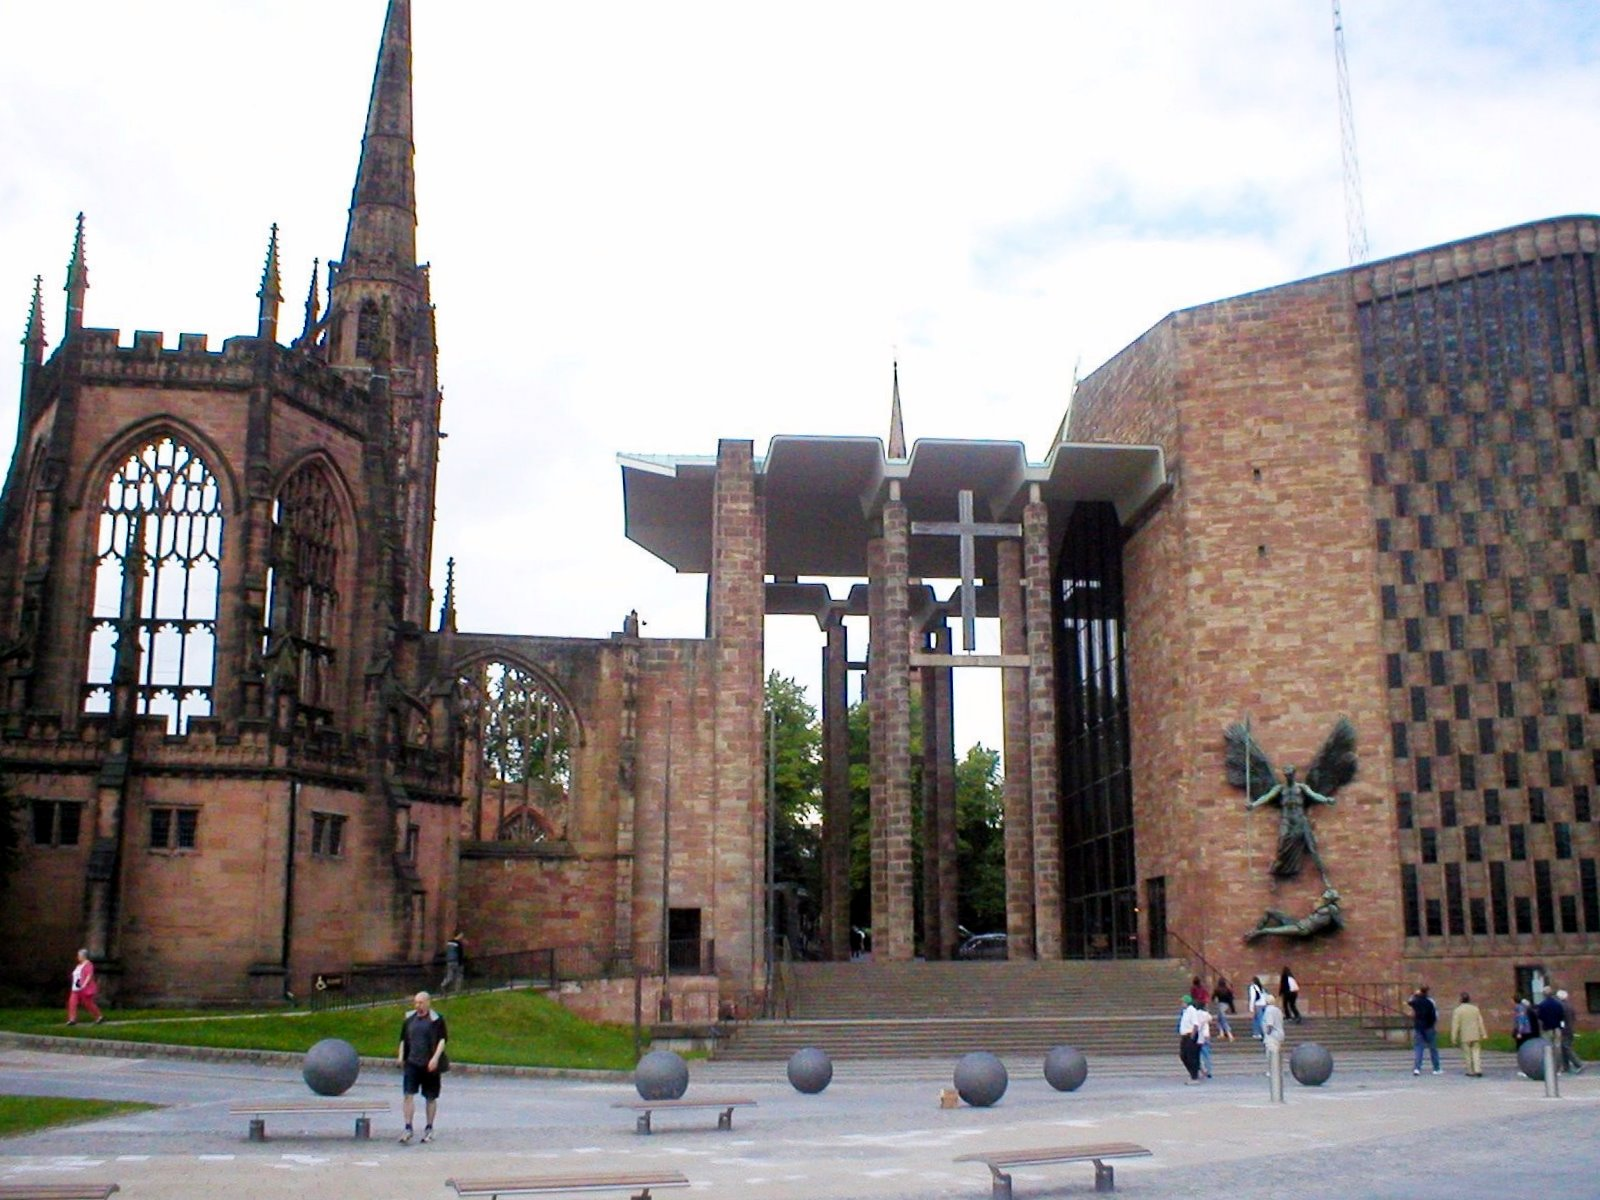 http://upload.wikimedia.org/wikipedia/commons/8/83/Coventry_cathedral.jpg